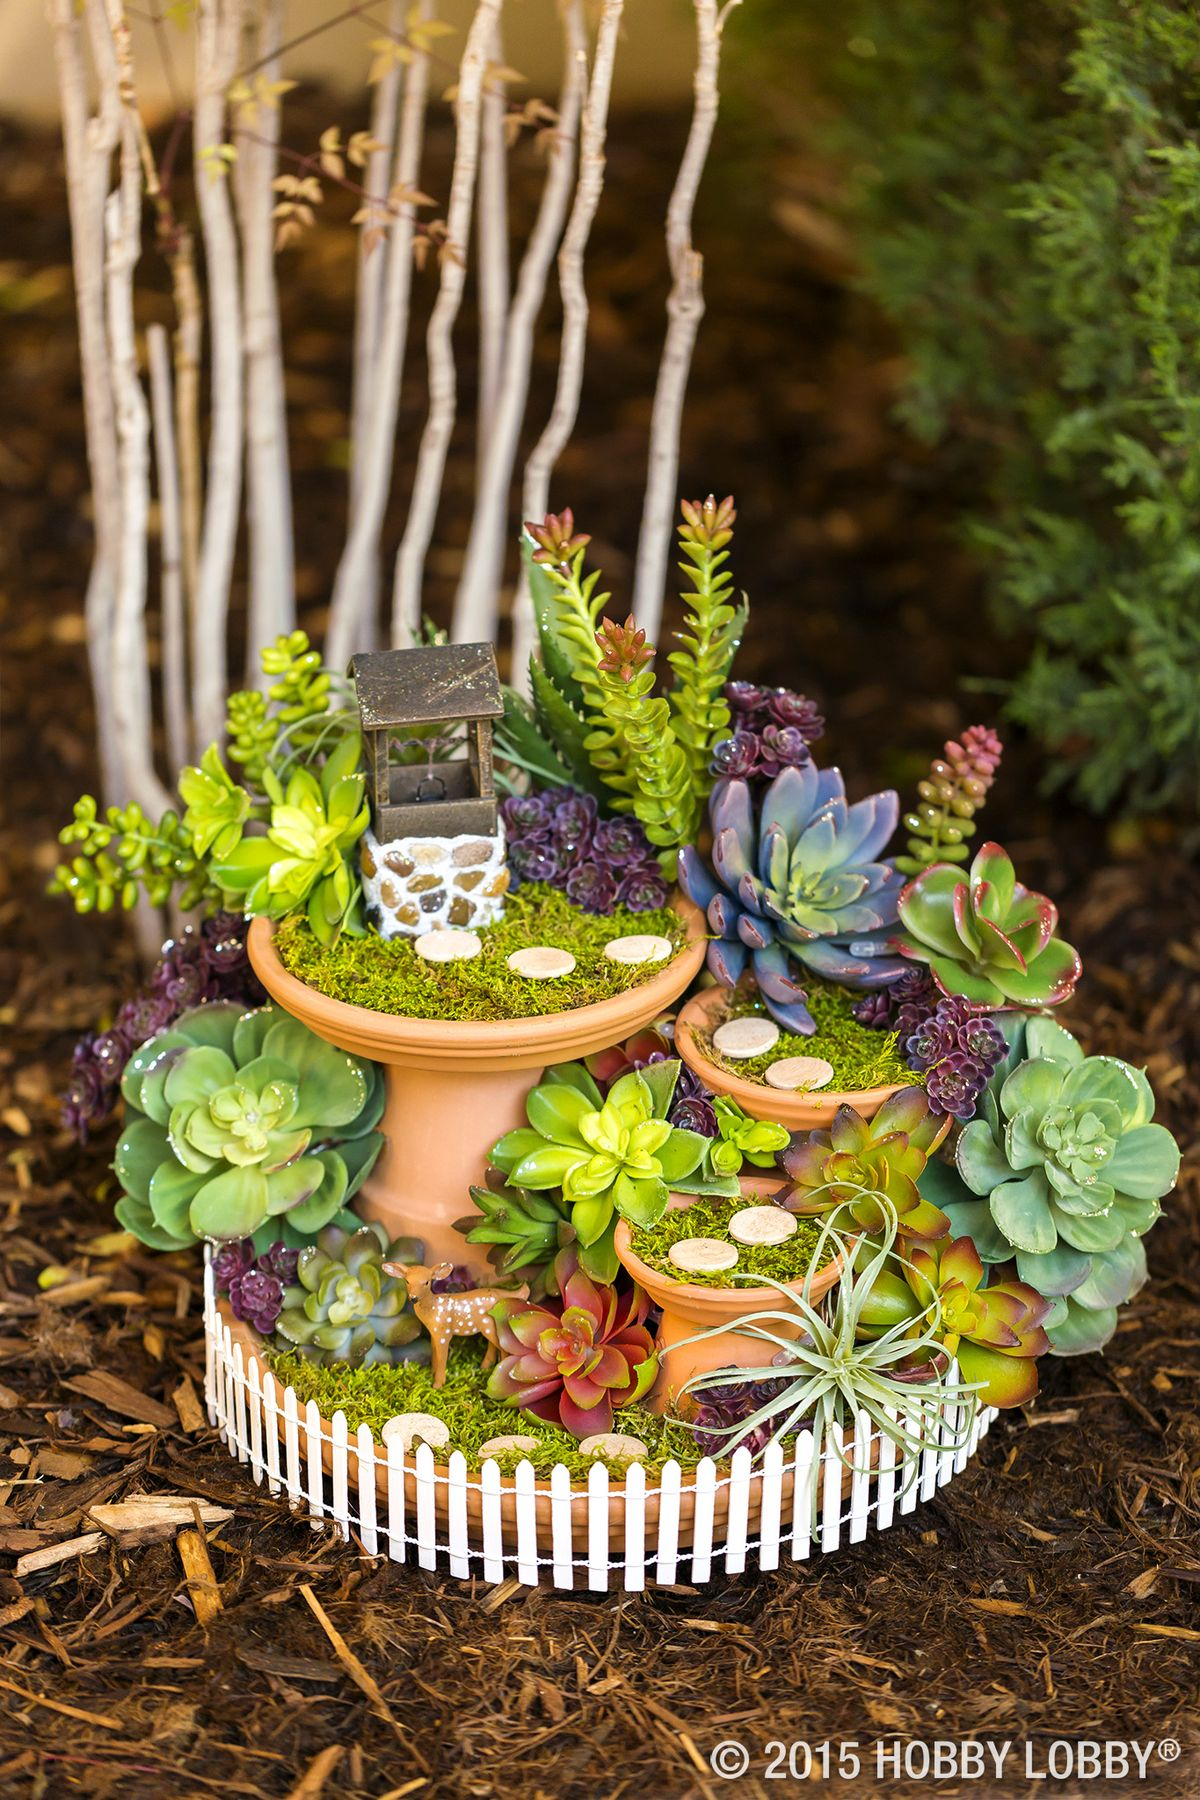 Garden designs with bridges and wishing wells landscaping ideas - A Quiet Diy Fairy Garden Wishing Well